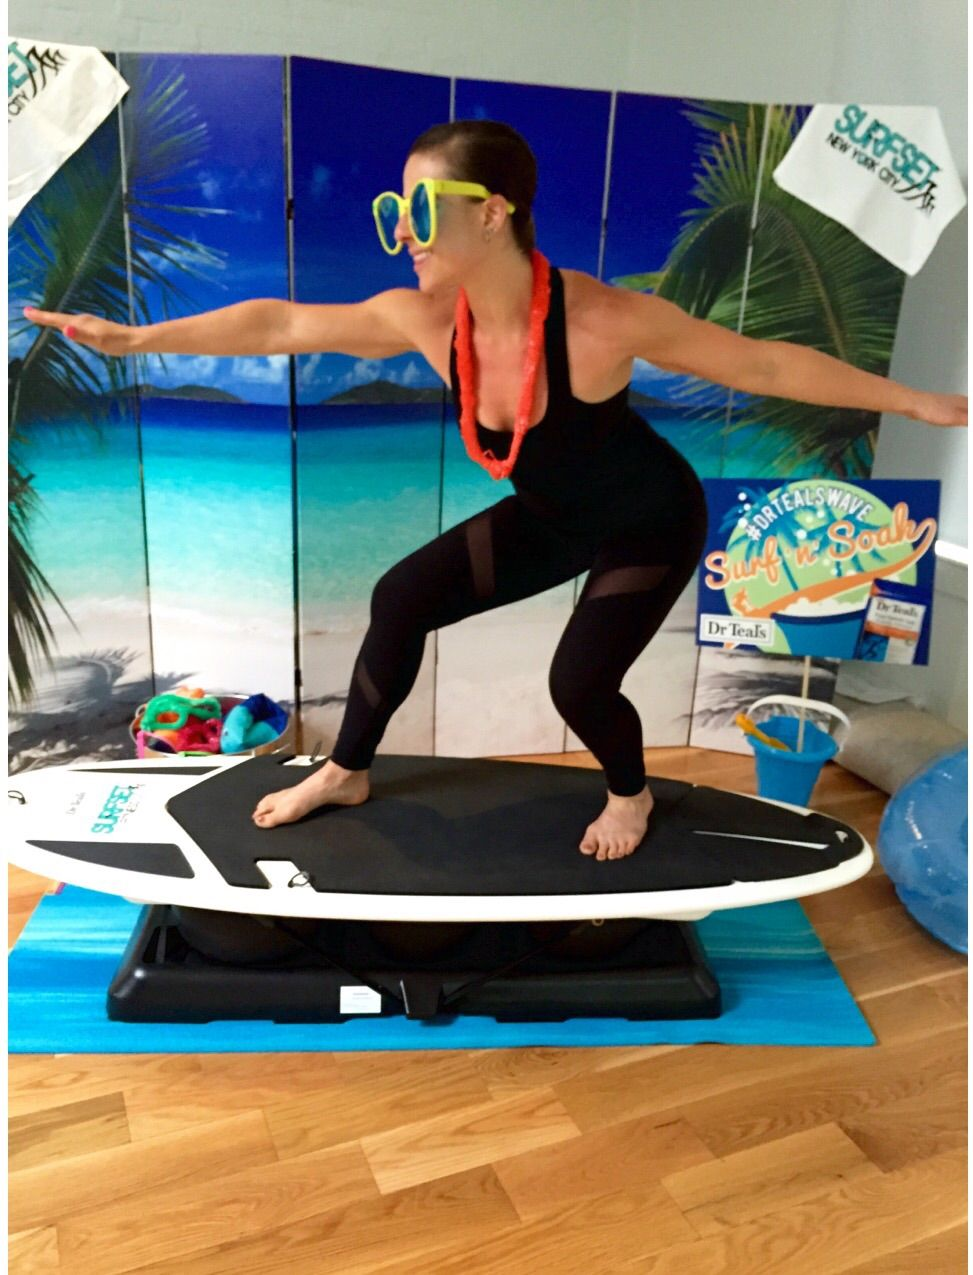 WORKOUT WEDNESDAY Surf and Turf surfset surf